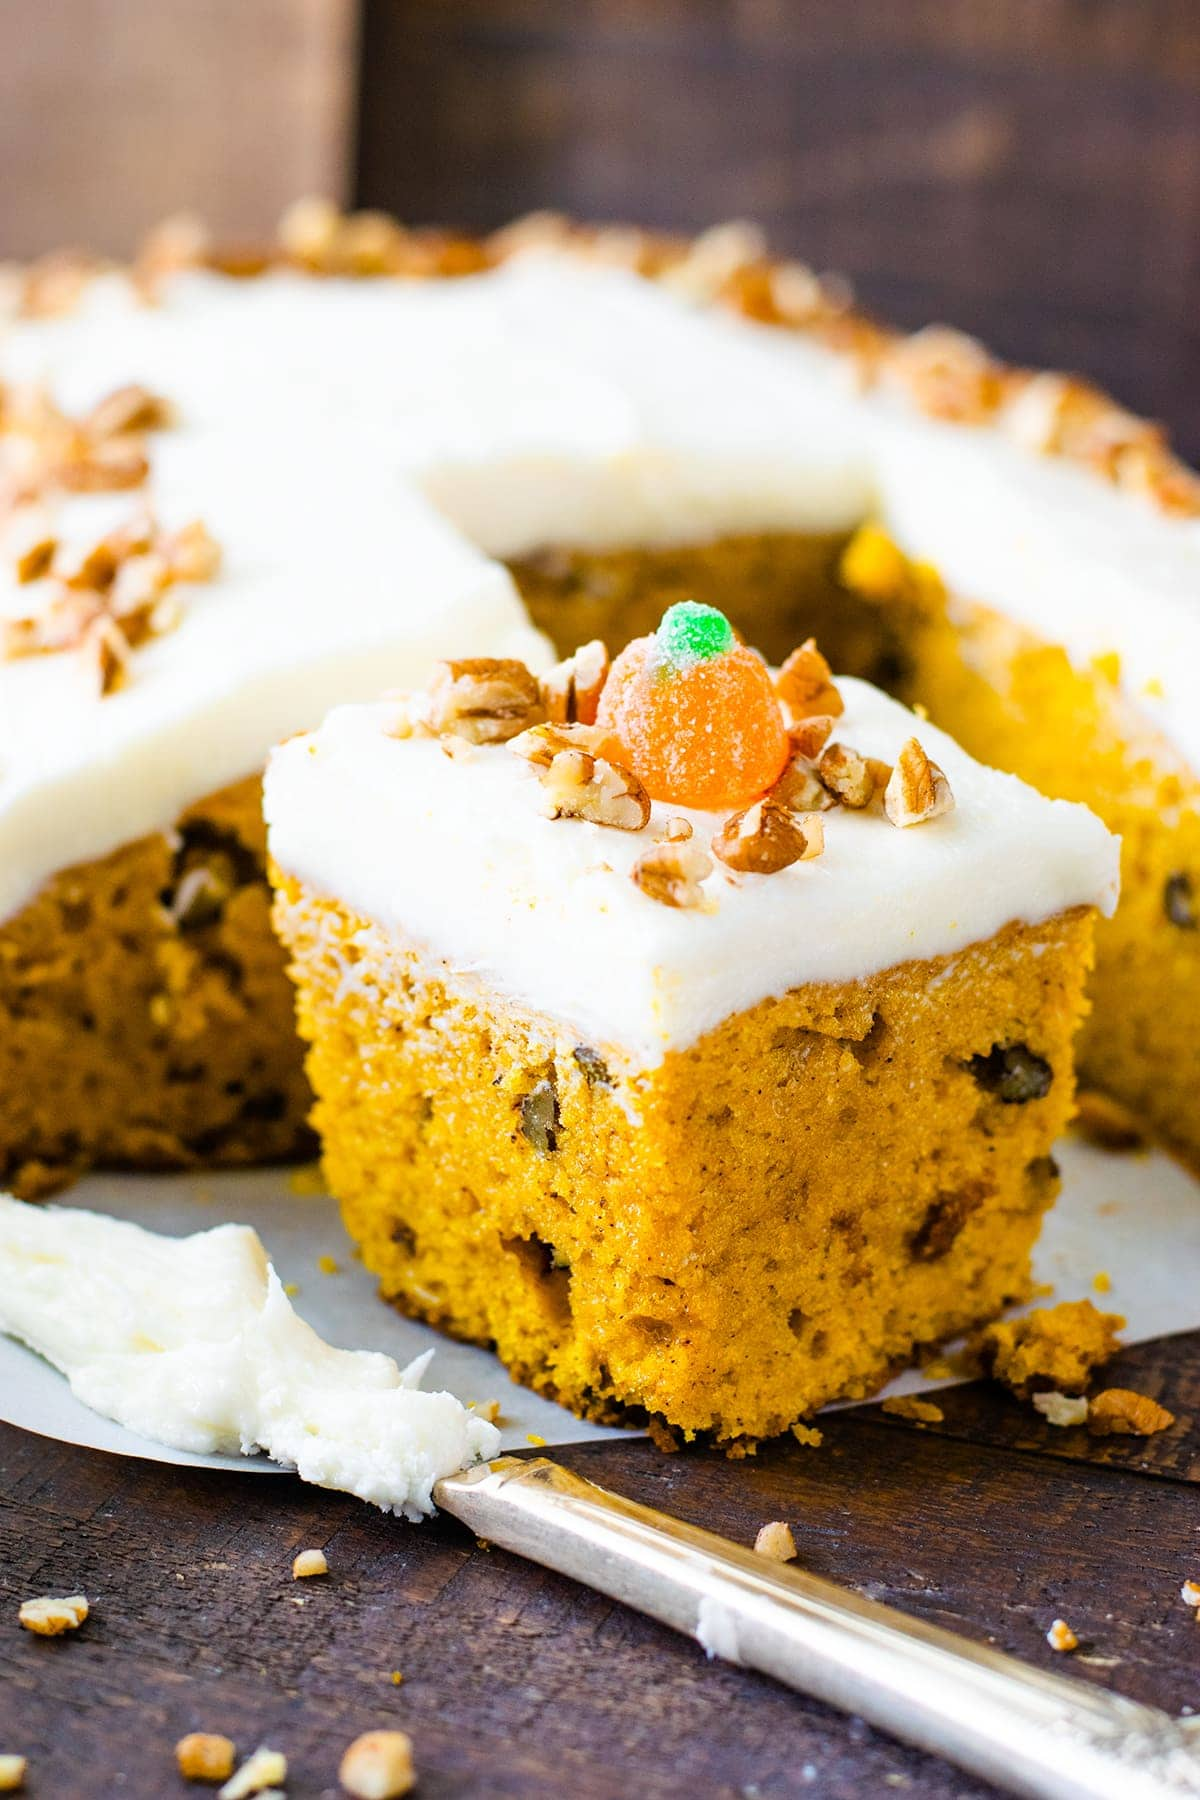 Slice of Pumpkin Spice Cake sprinkled with pecans and a candy pumpkin on a serving board.